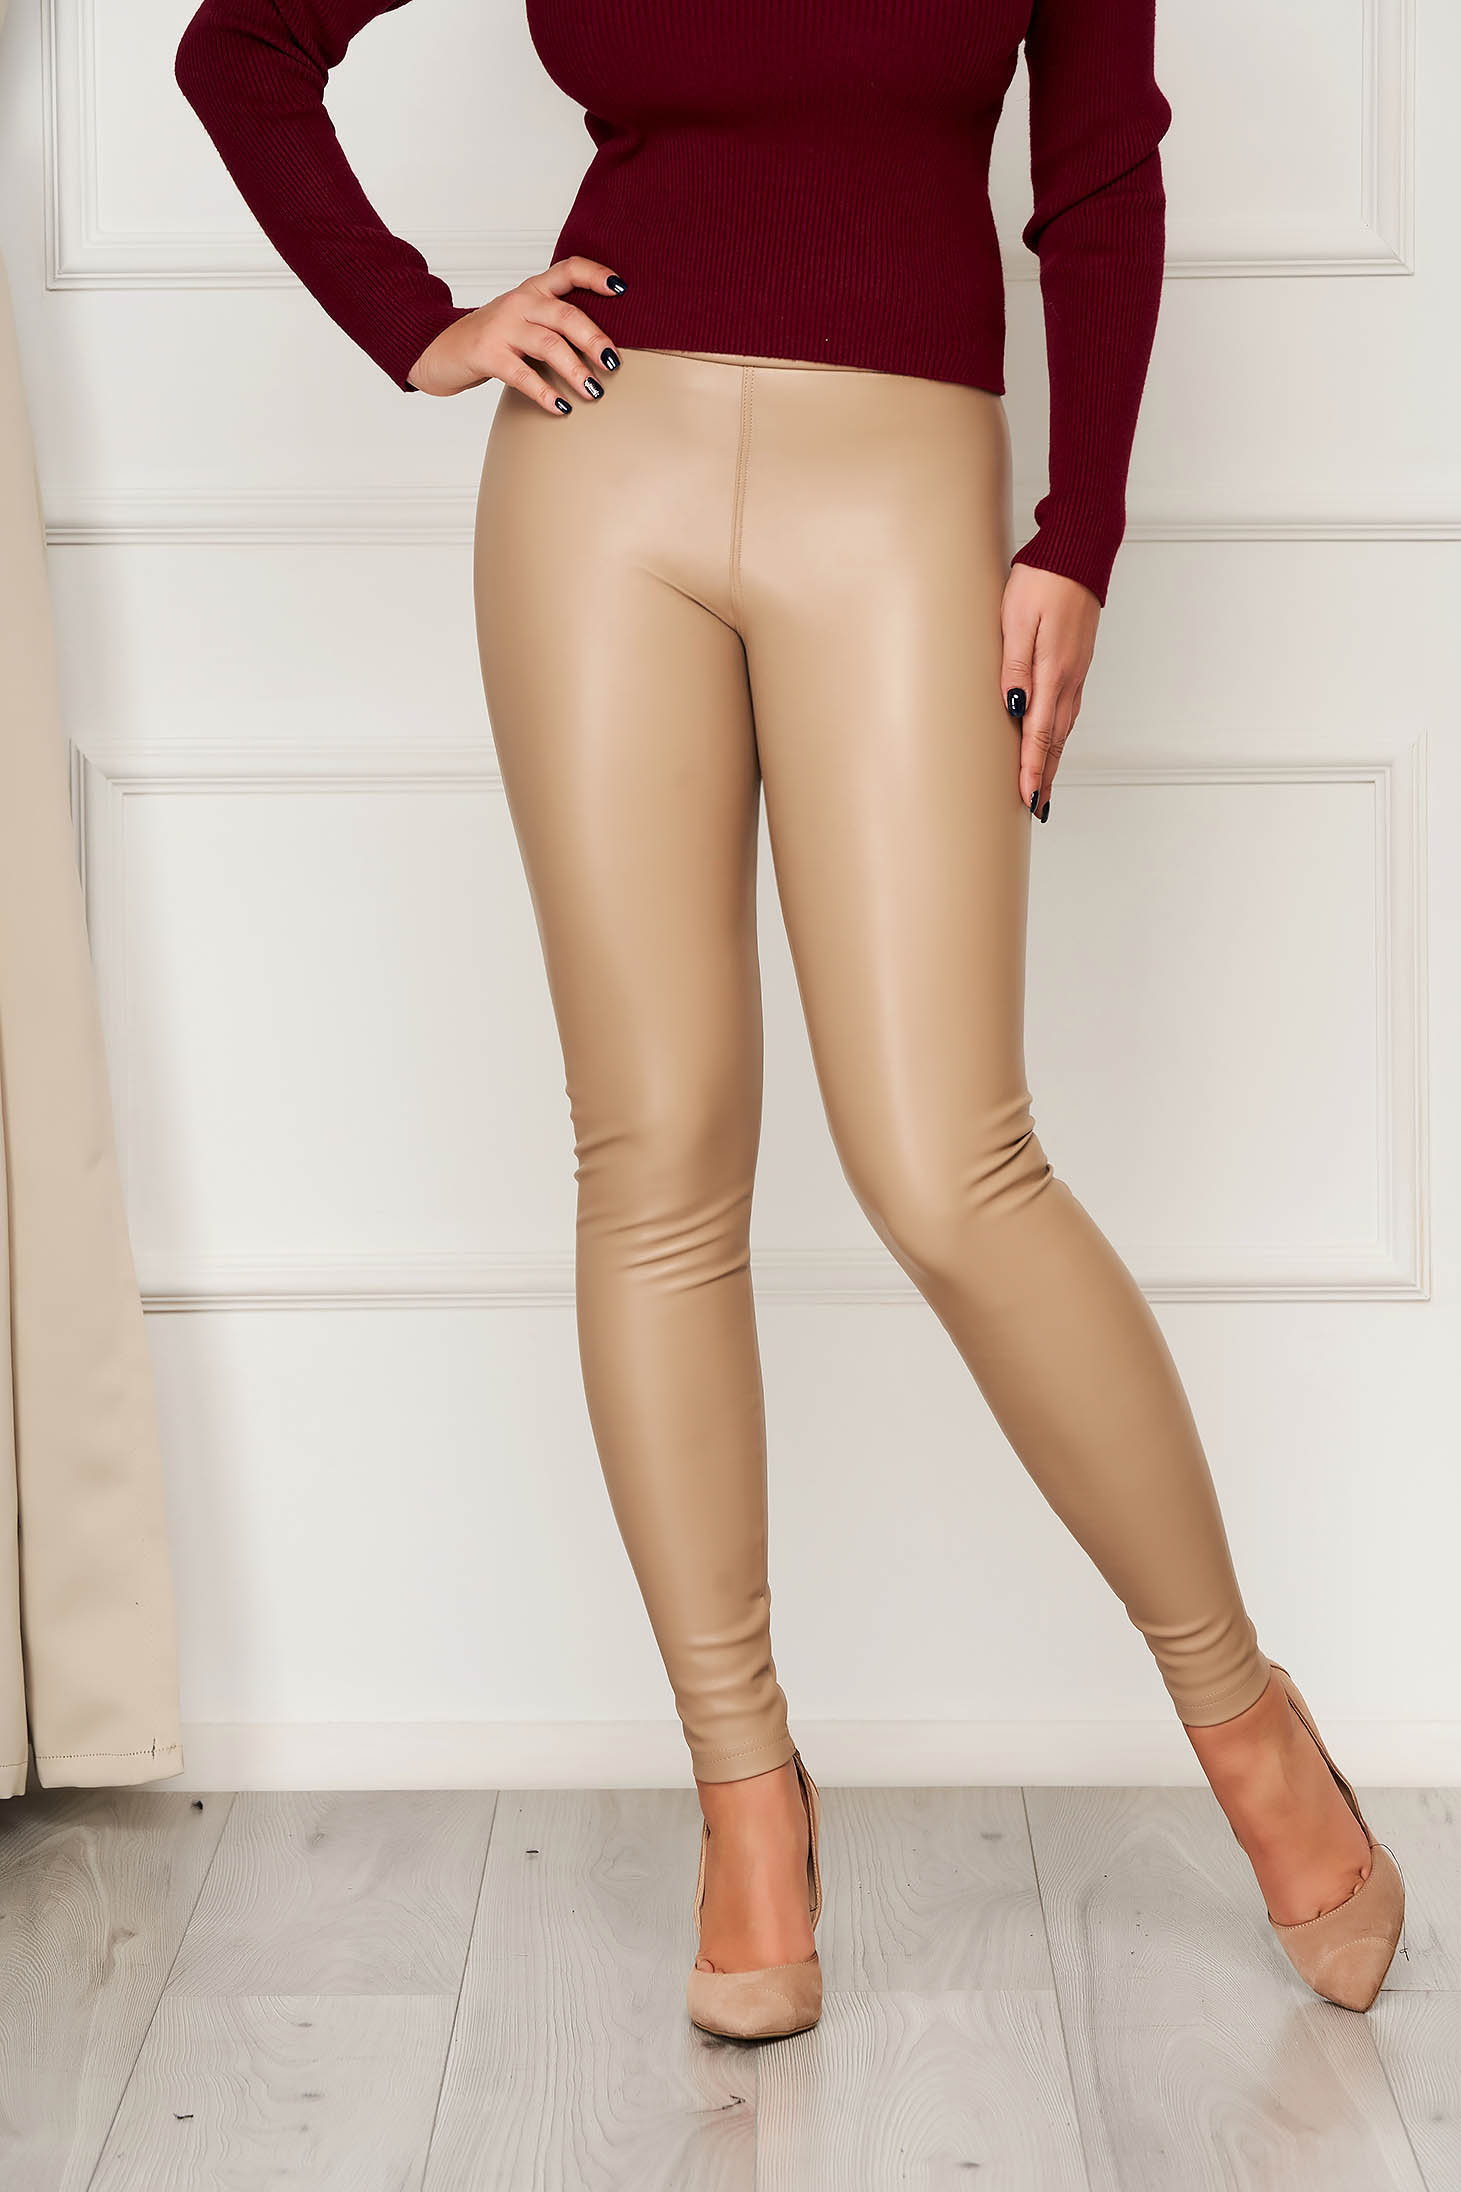 From ecological leather high waisted elastic waist cream tights